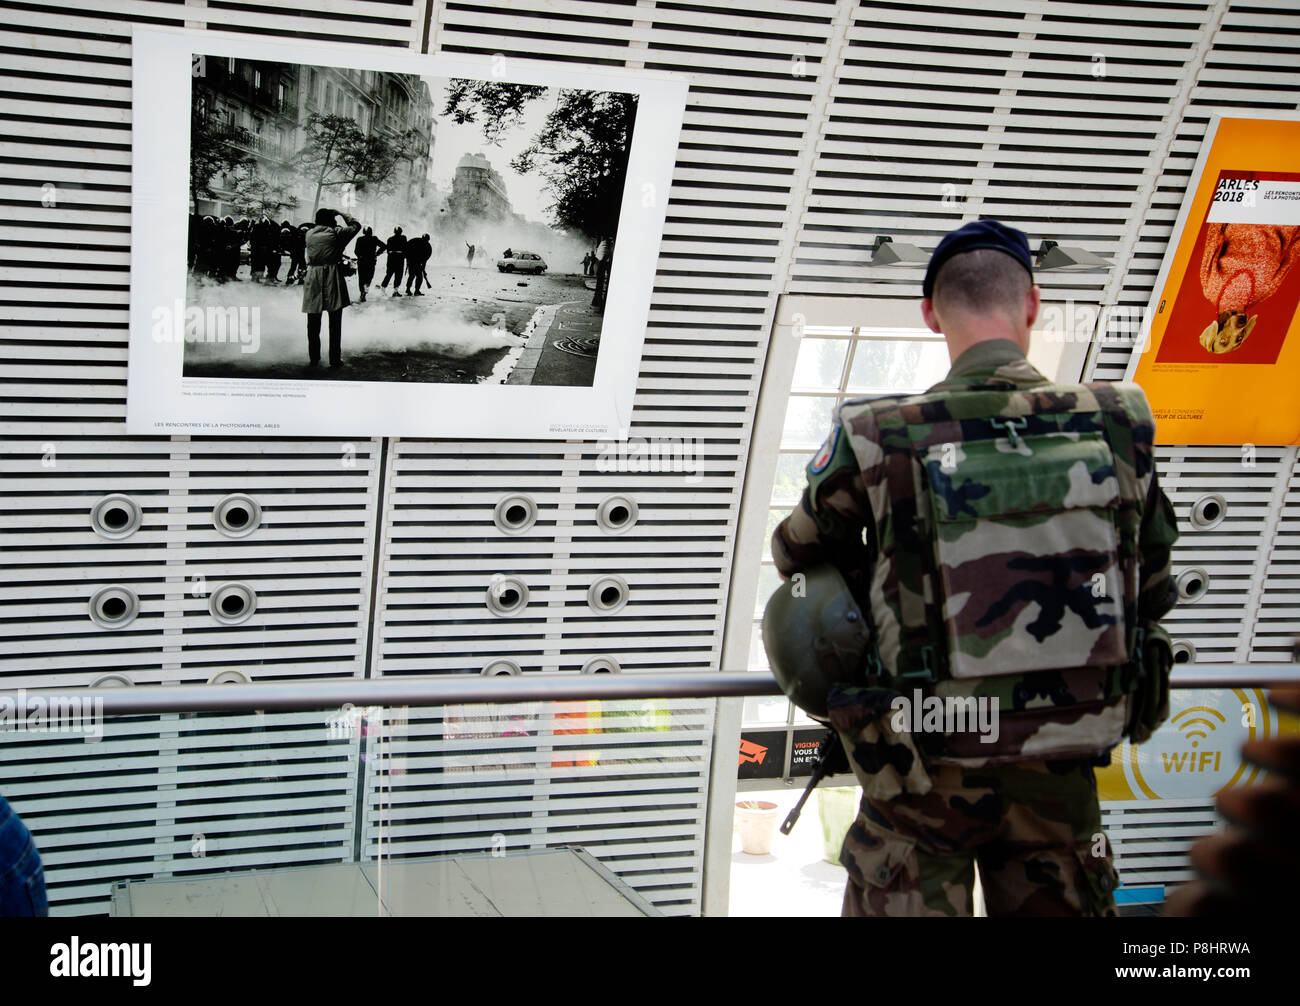 Avignon, France. TGV and Eurostar train station. An armed soldier on patrol inside the station which is decorated with photos from Arles photography f - Stock Image